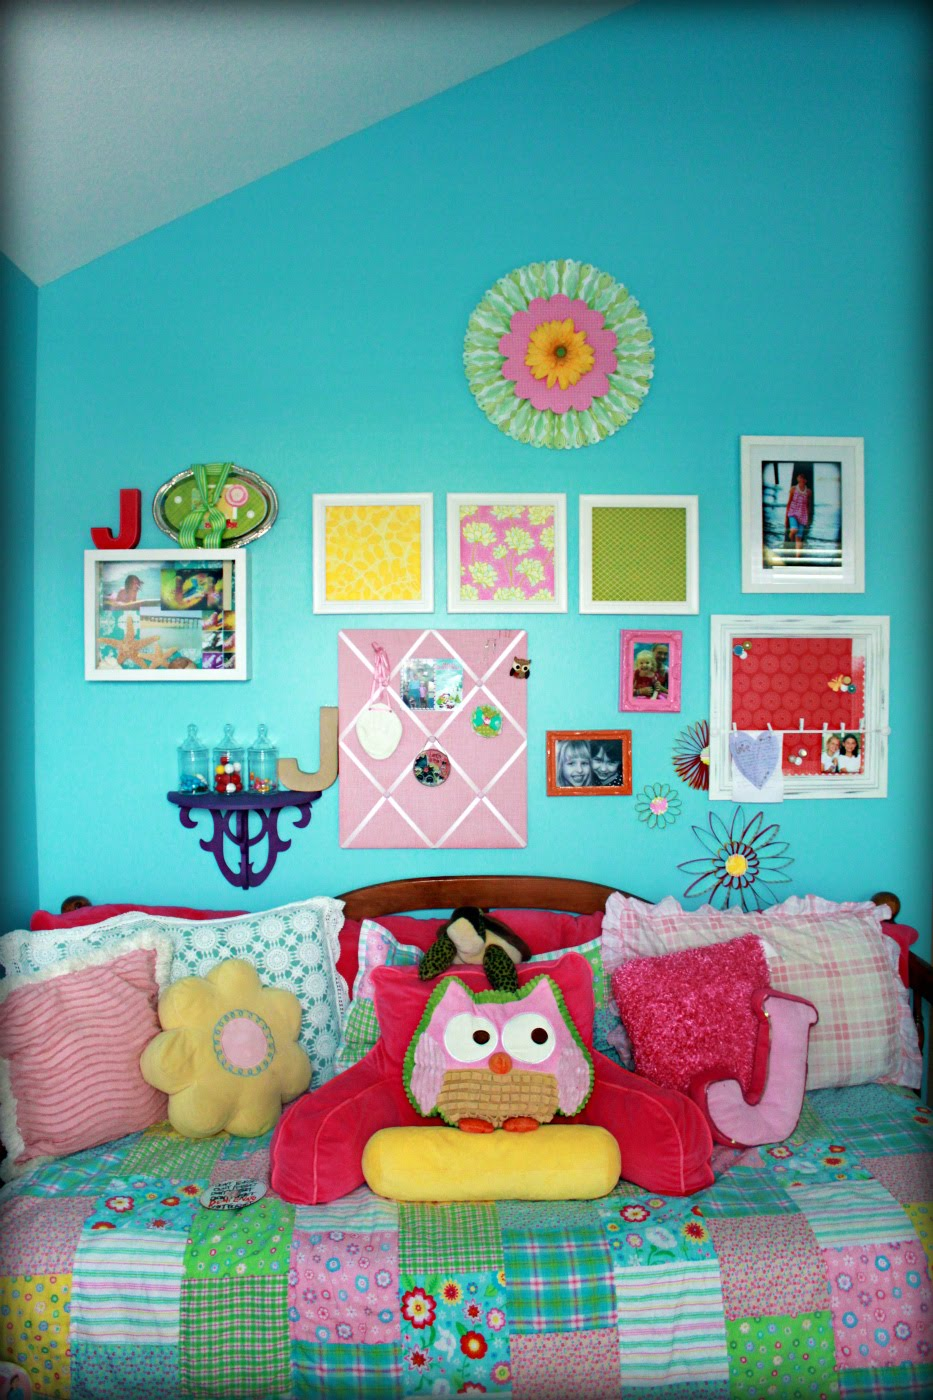 Wip blog tween bedroom - Cute bedroom ideas for tweens ...